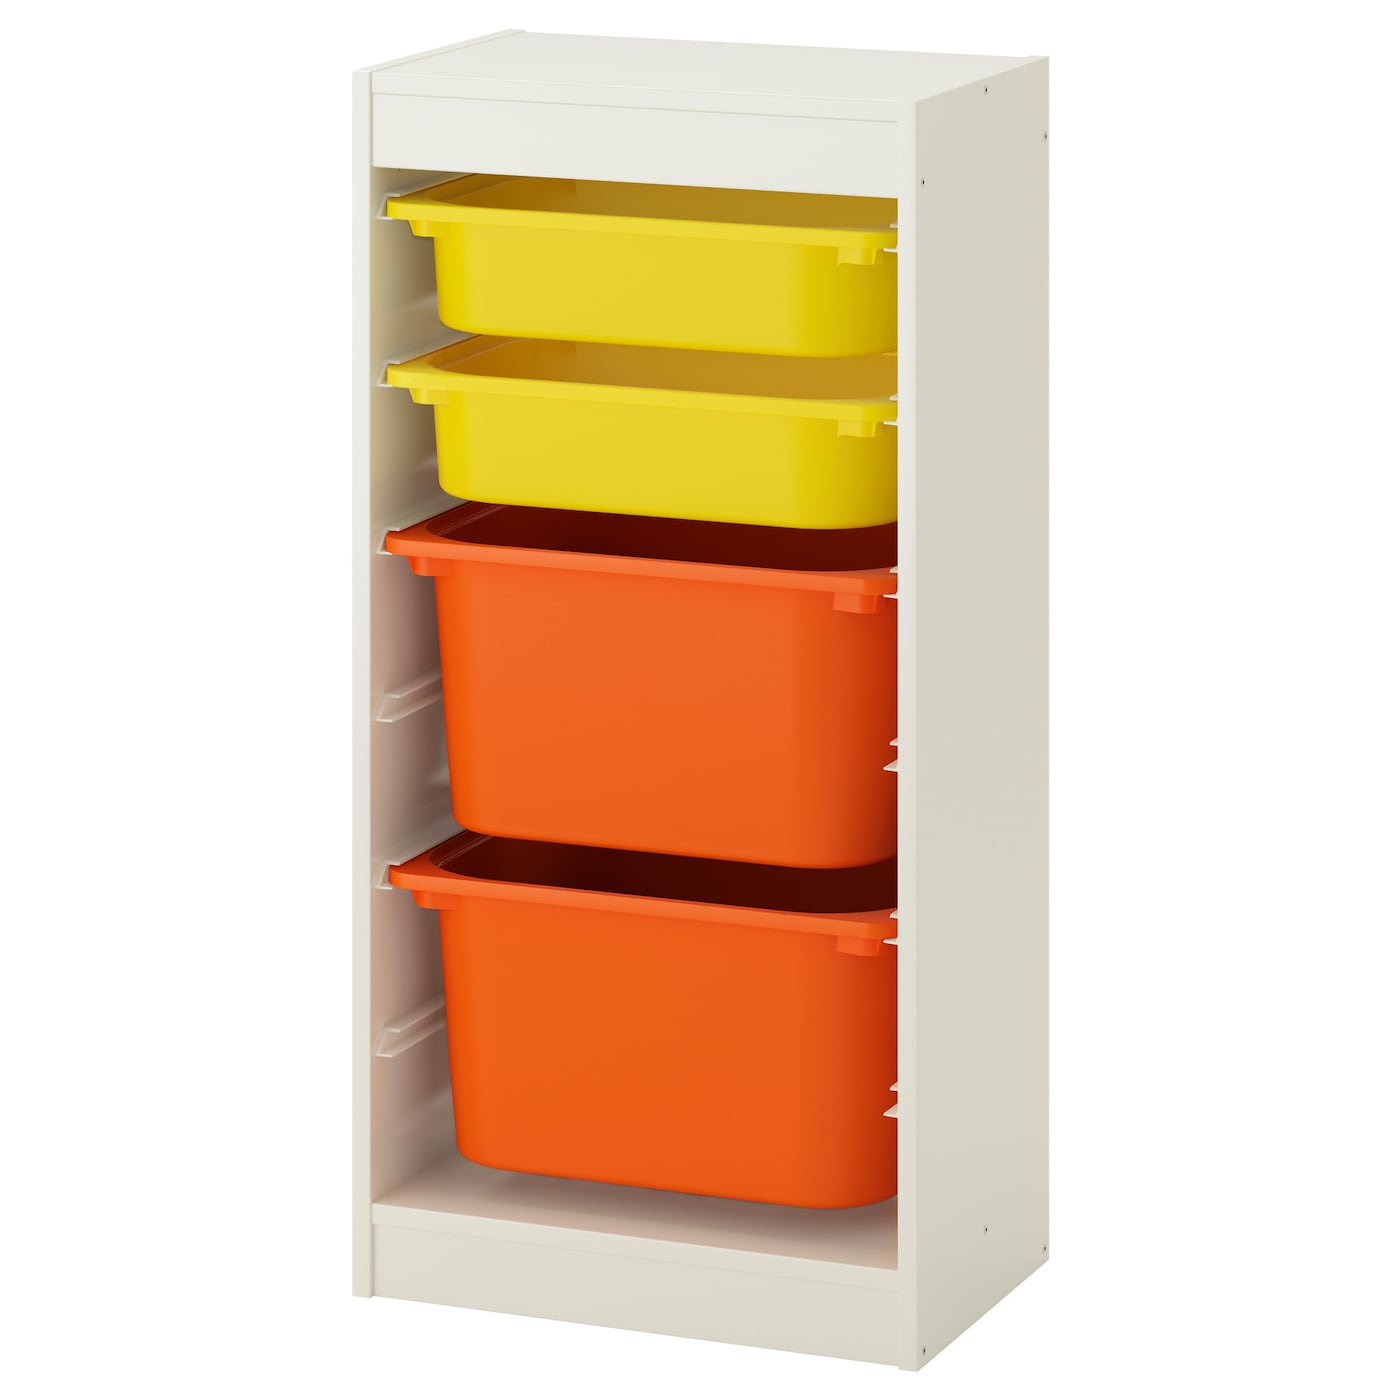 trofast storage combination with boxes white yellow orange 46x30x94 cm ikea. Black Bedroom Furniture Sets. Home Design Ideas